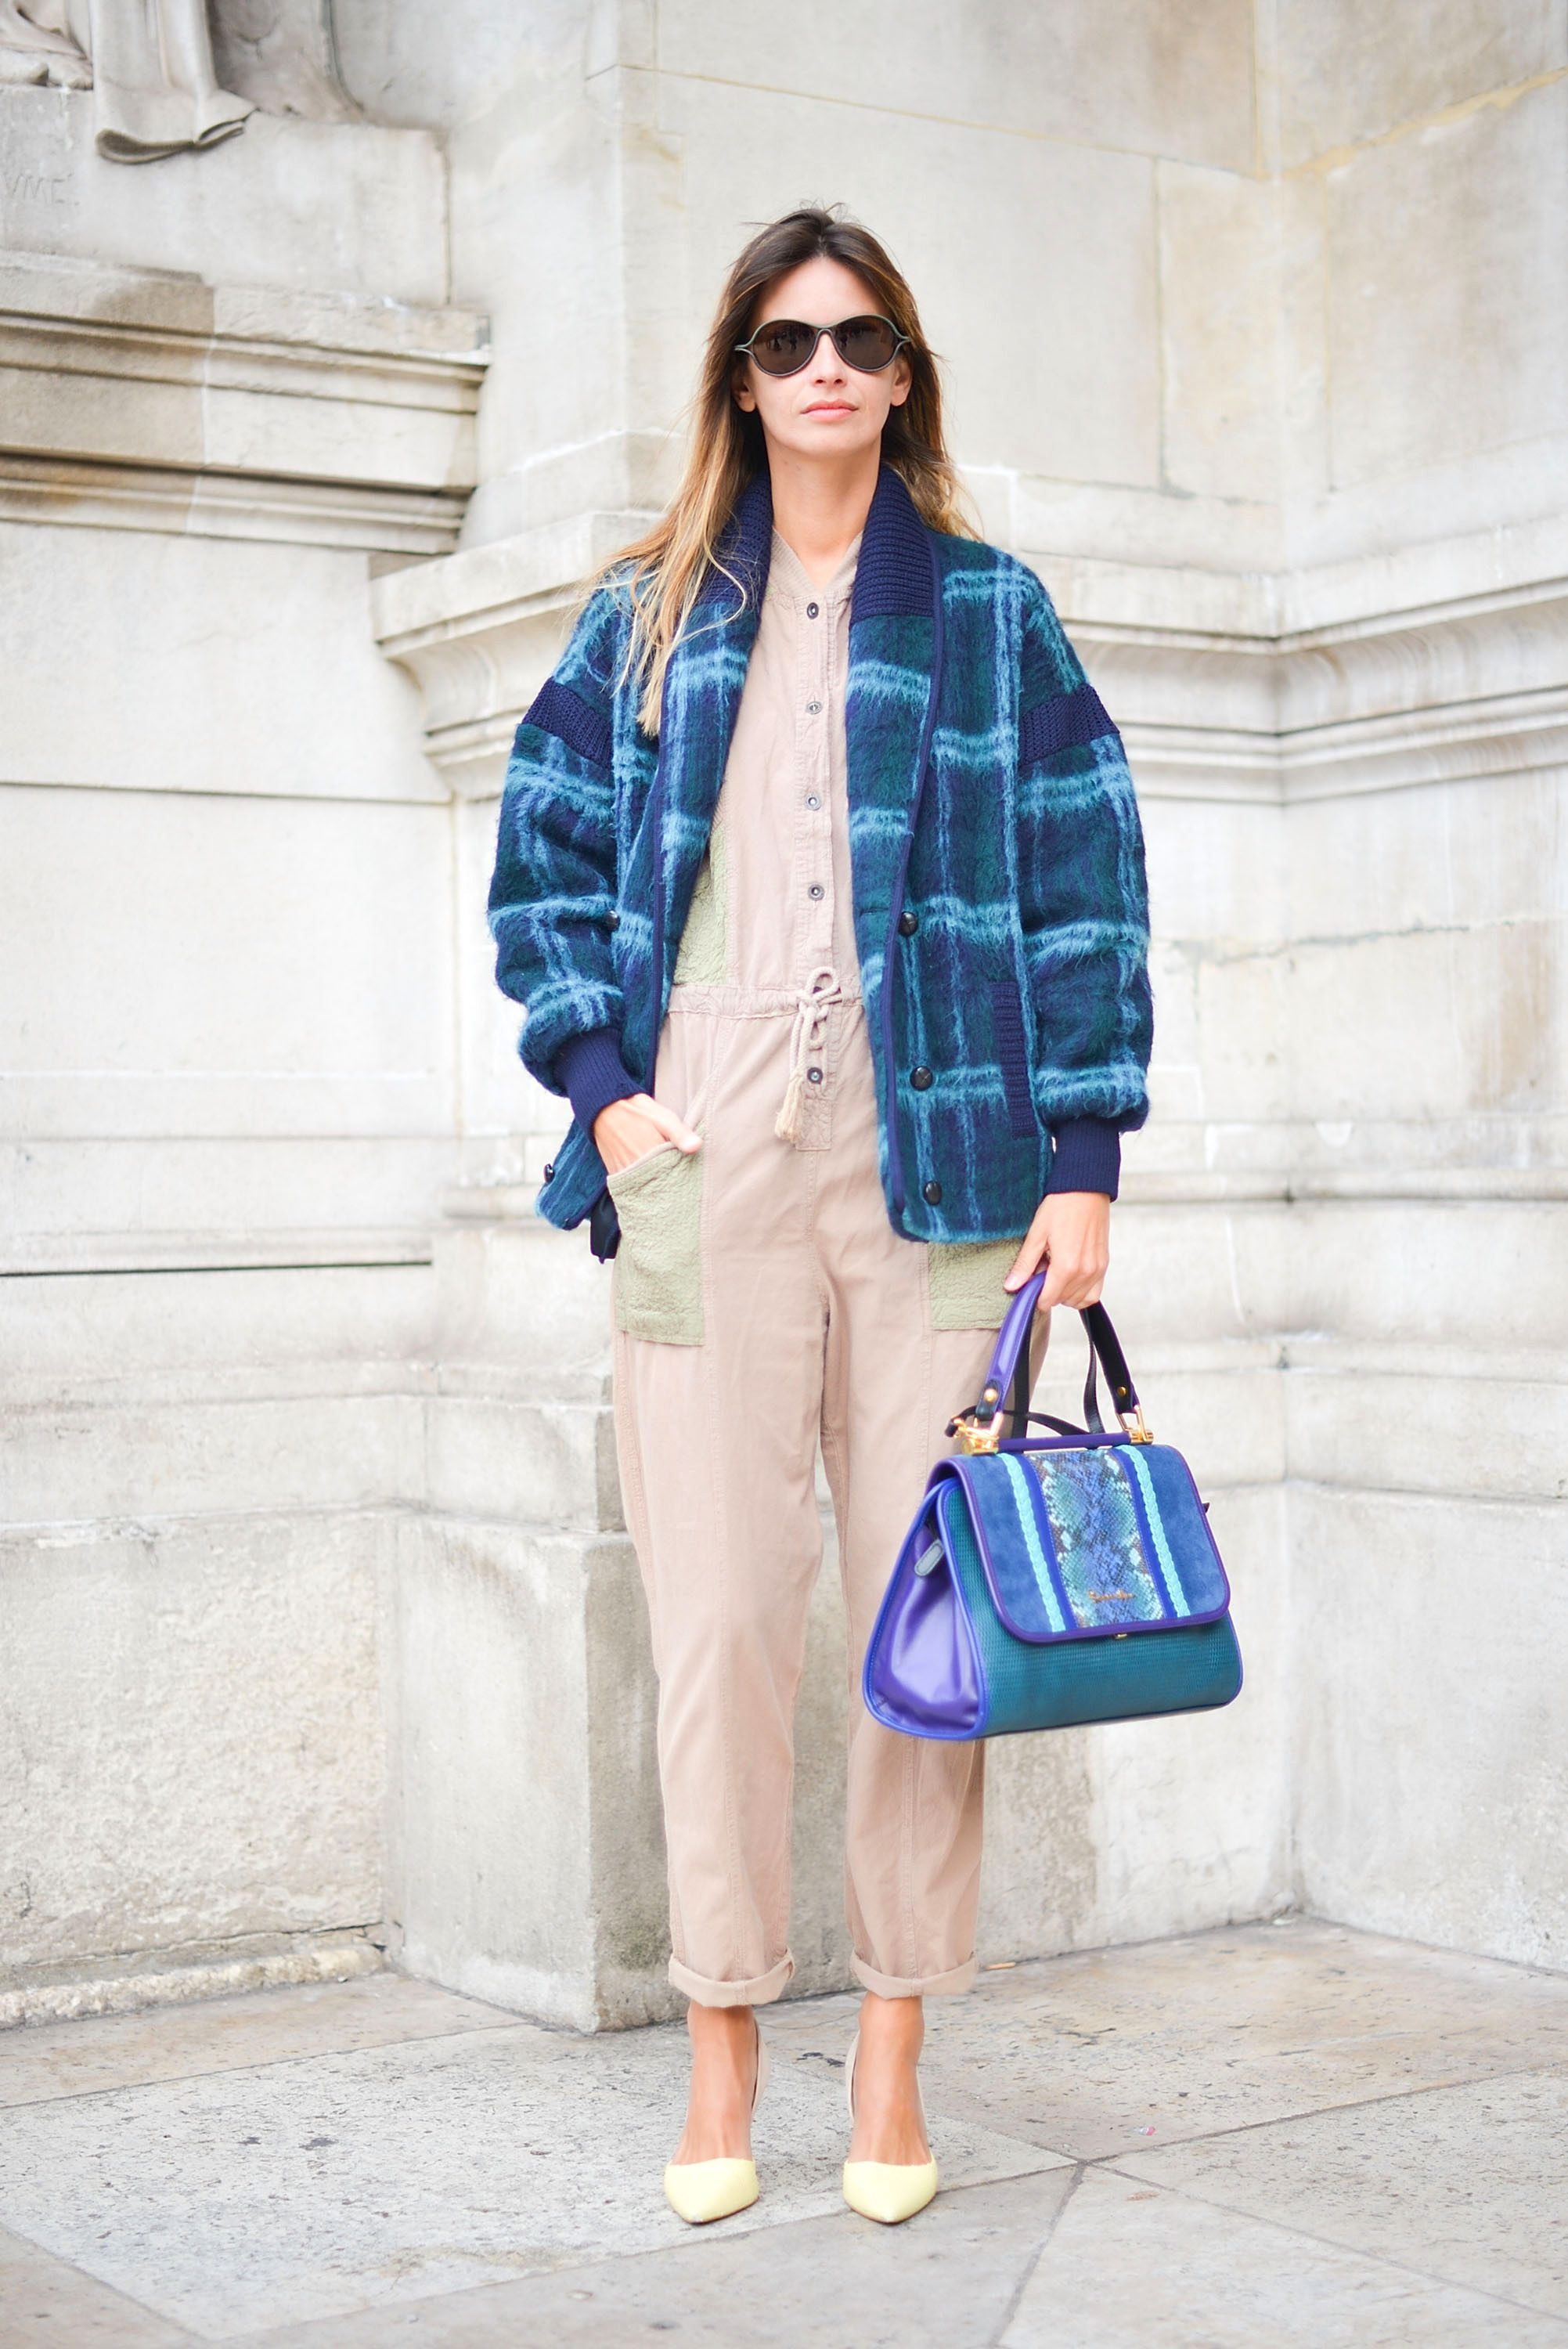 The Clara Racz Guide to Style | StyleCaster